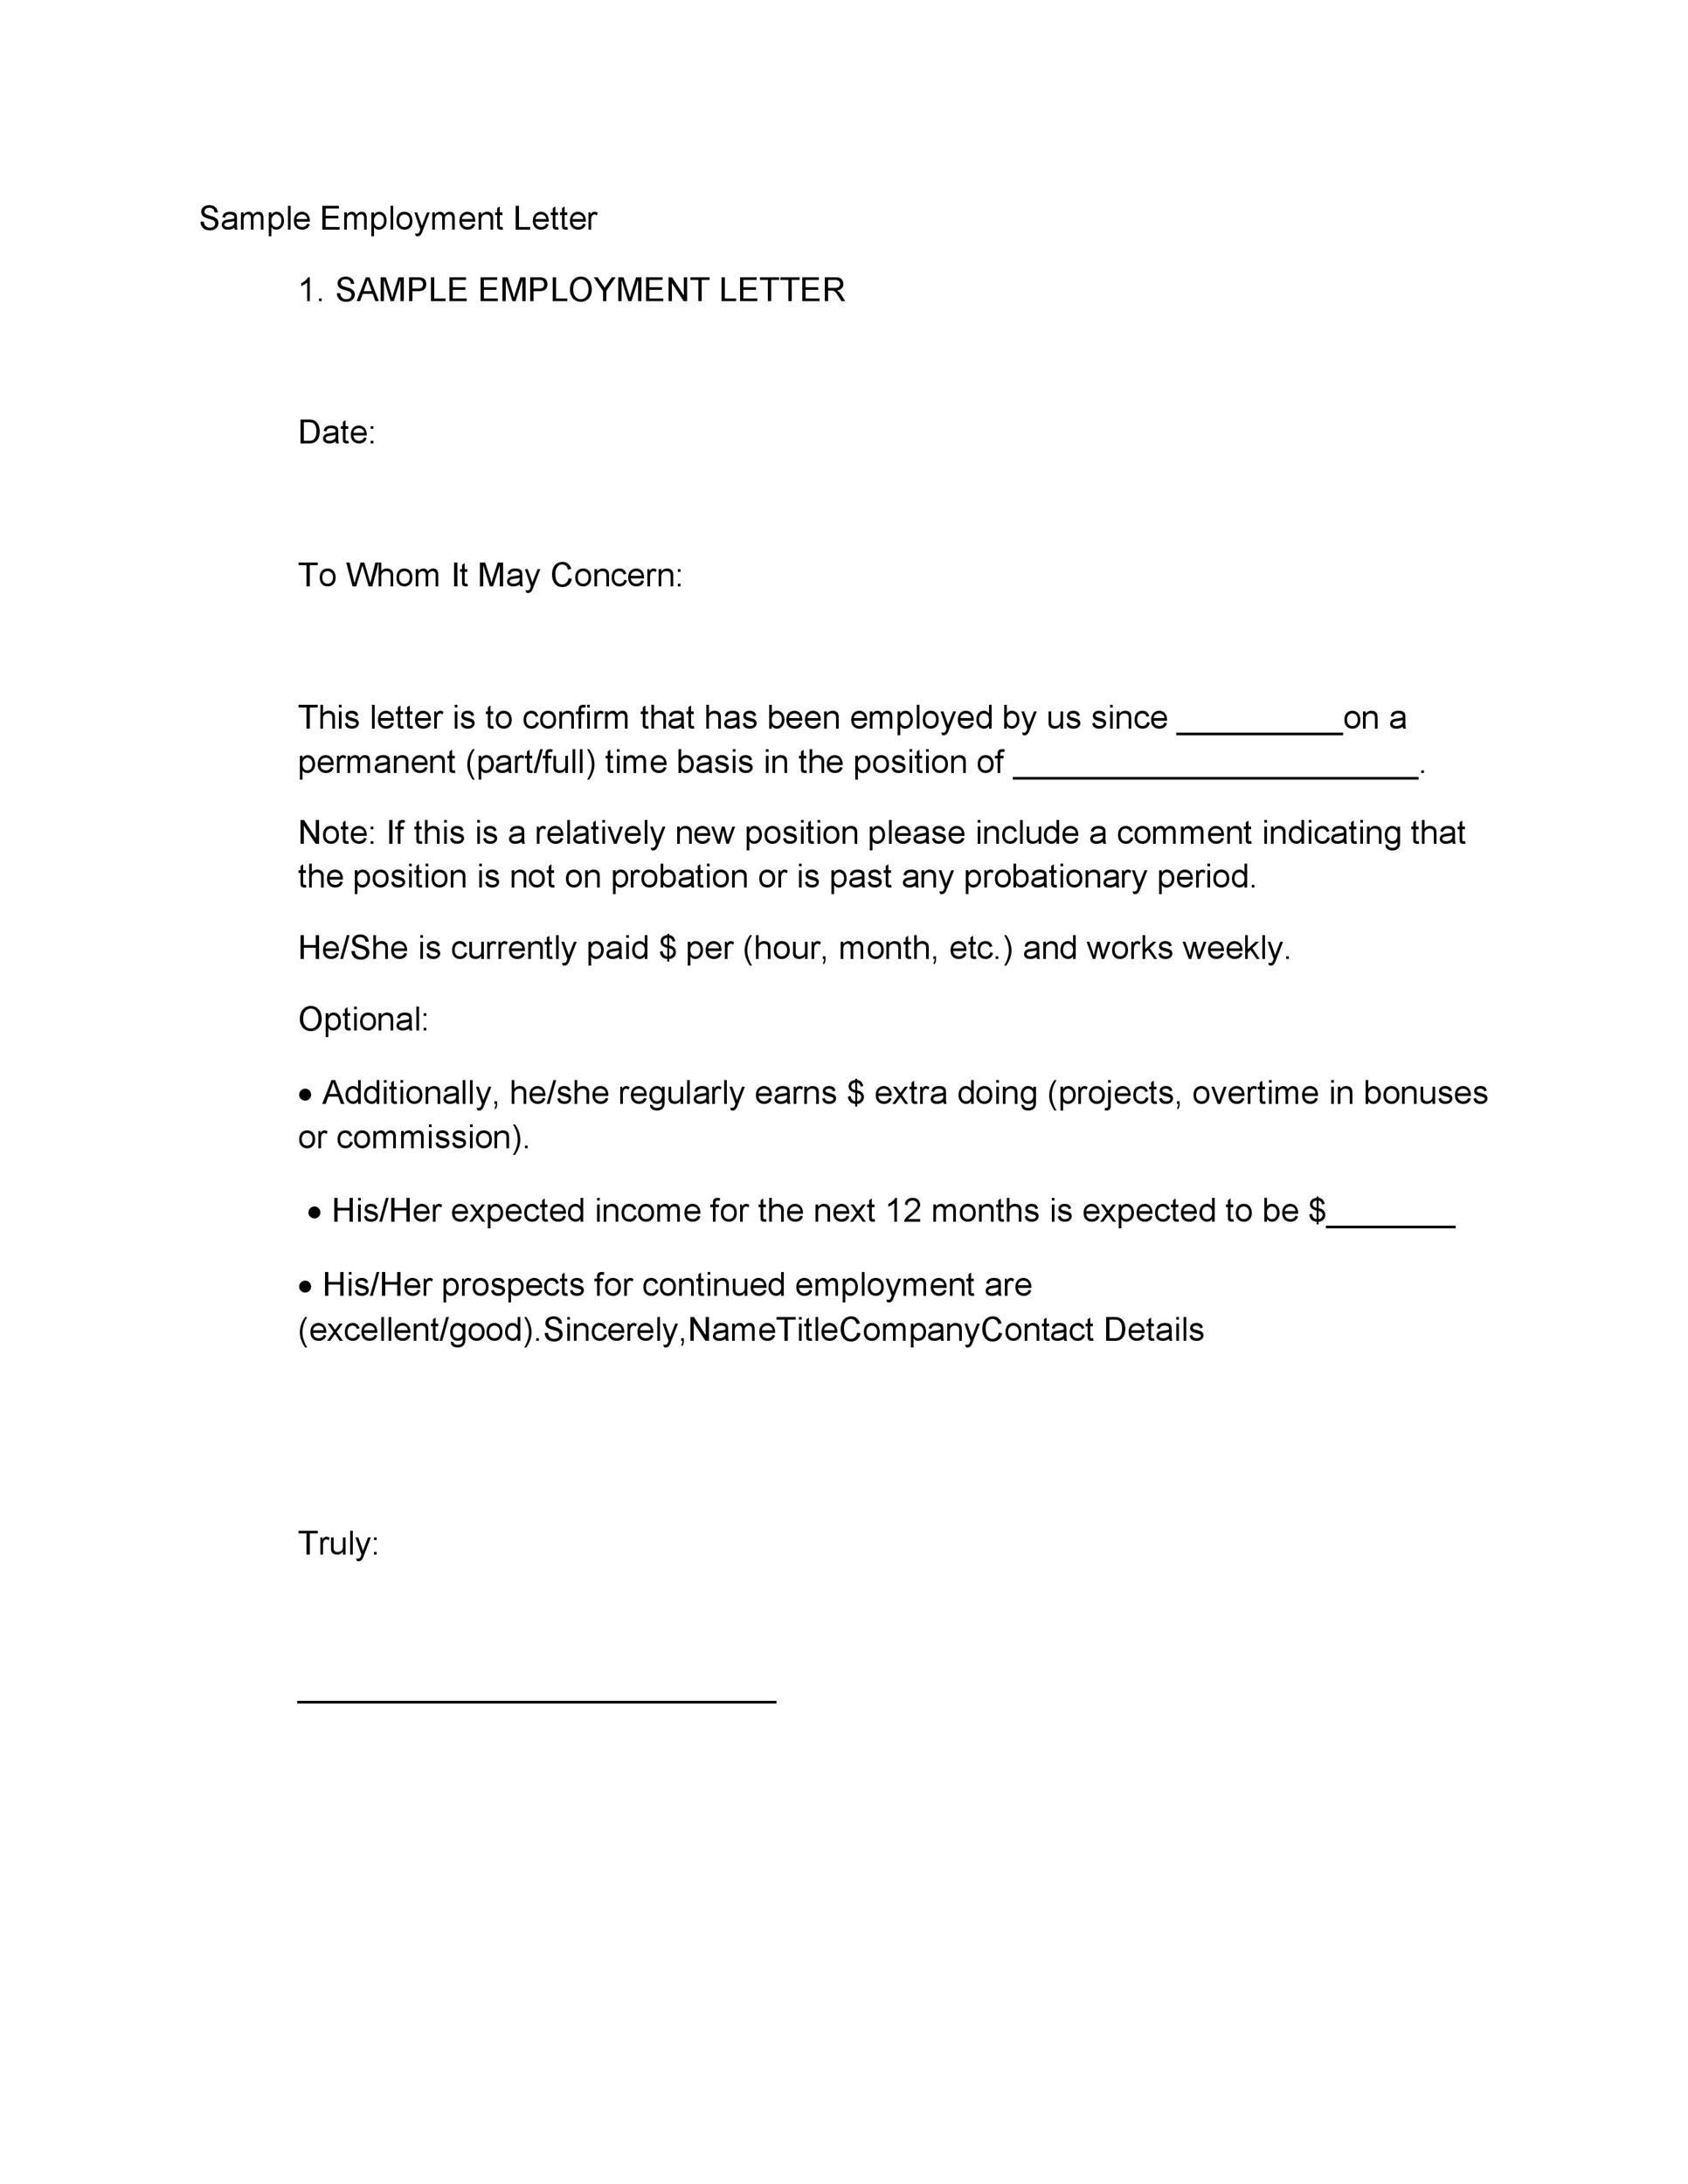 Employment Verification Form Questions  Research Proposal Sample Mit